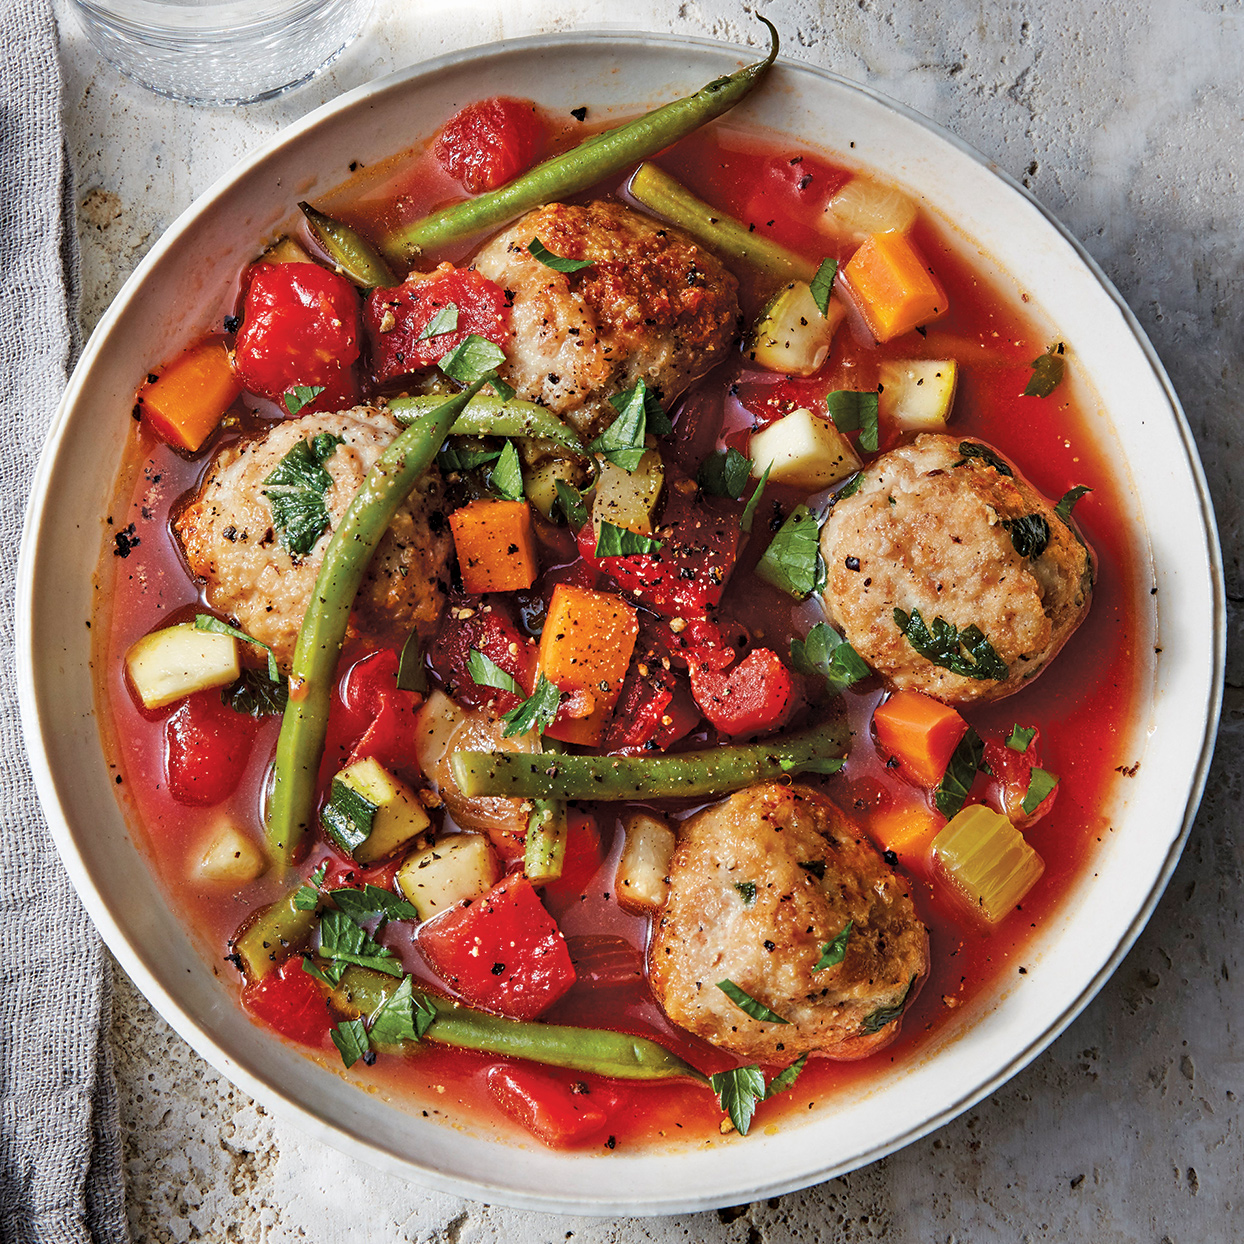 Slow-Cooker Vegetable & Chicken Meatball Soup Trusted Brands